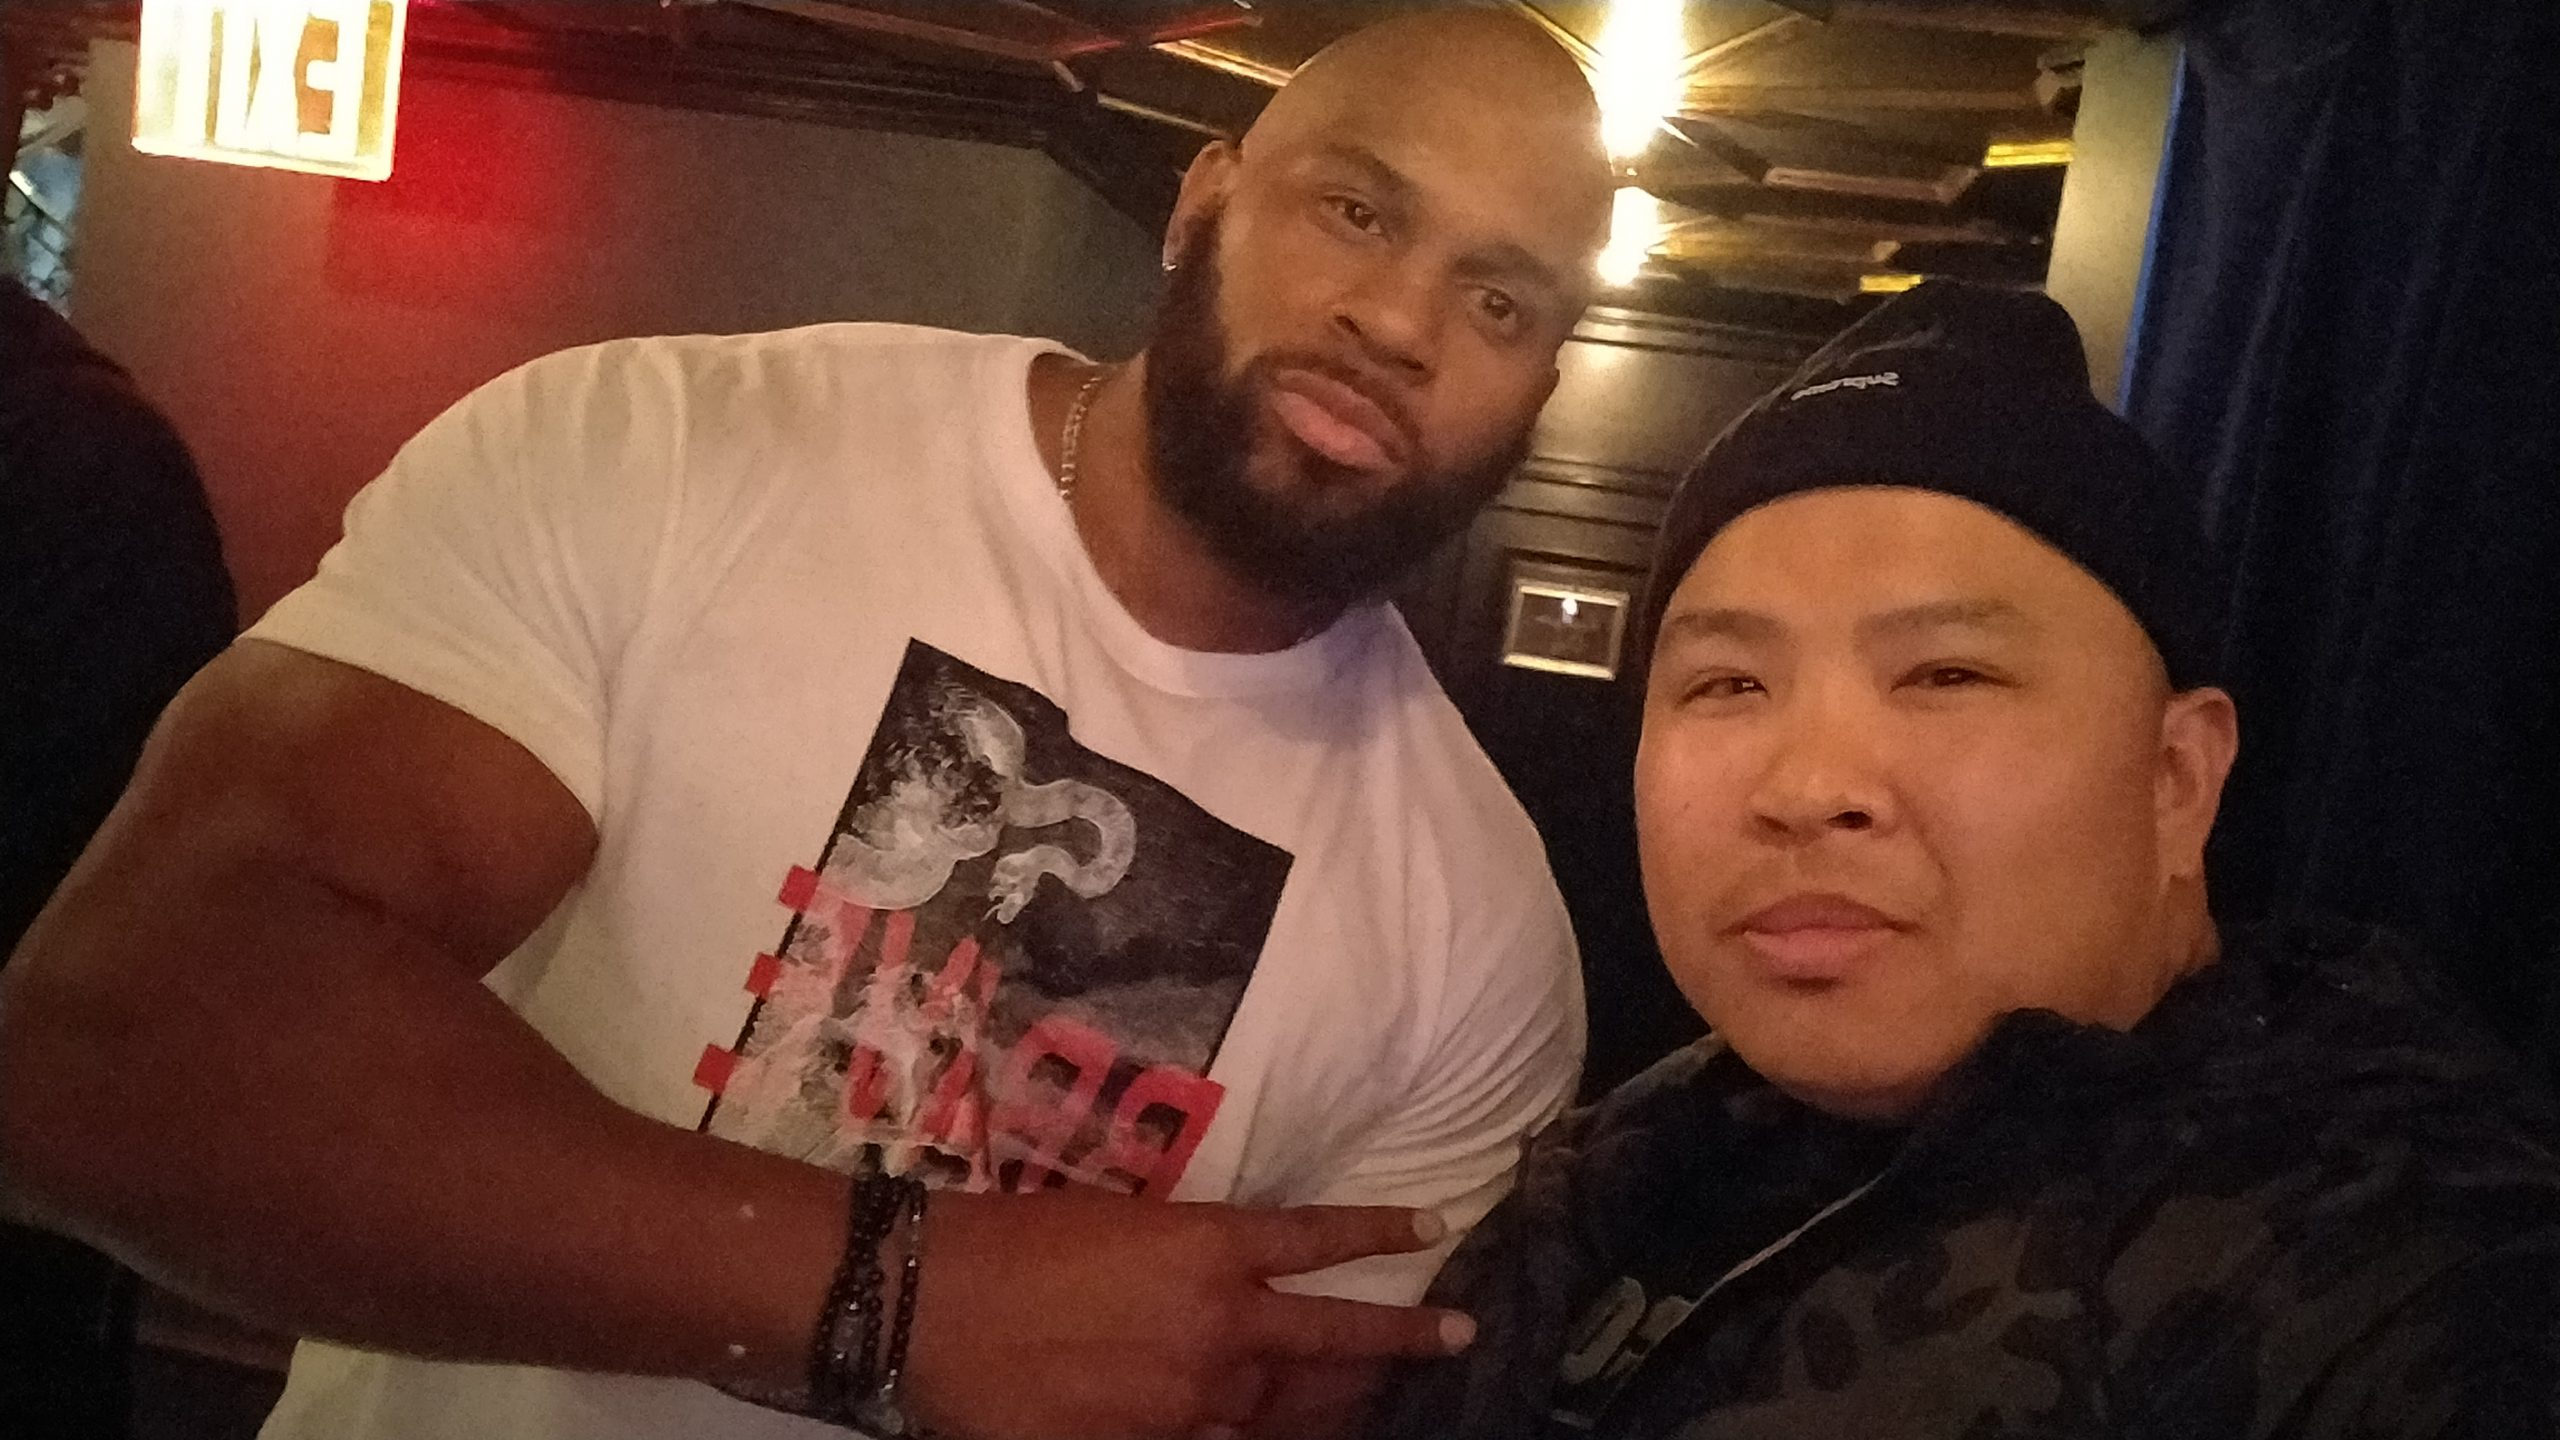 Wayne Lapasa with pro wrestler Shad Gaspard of CrymeTime at WaleMania V in Sony Hall